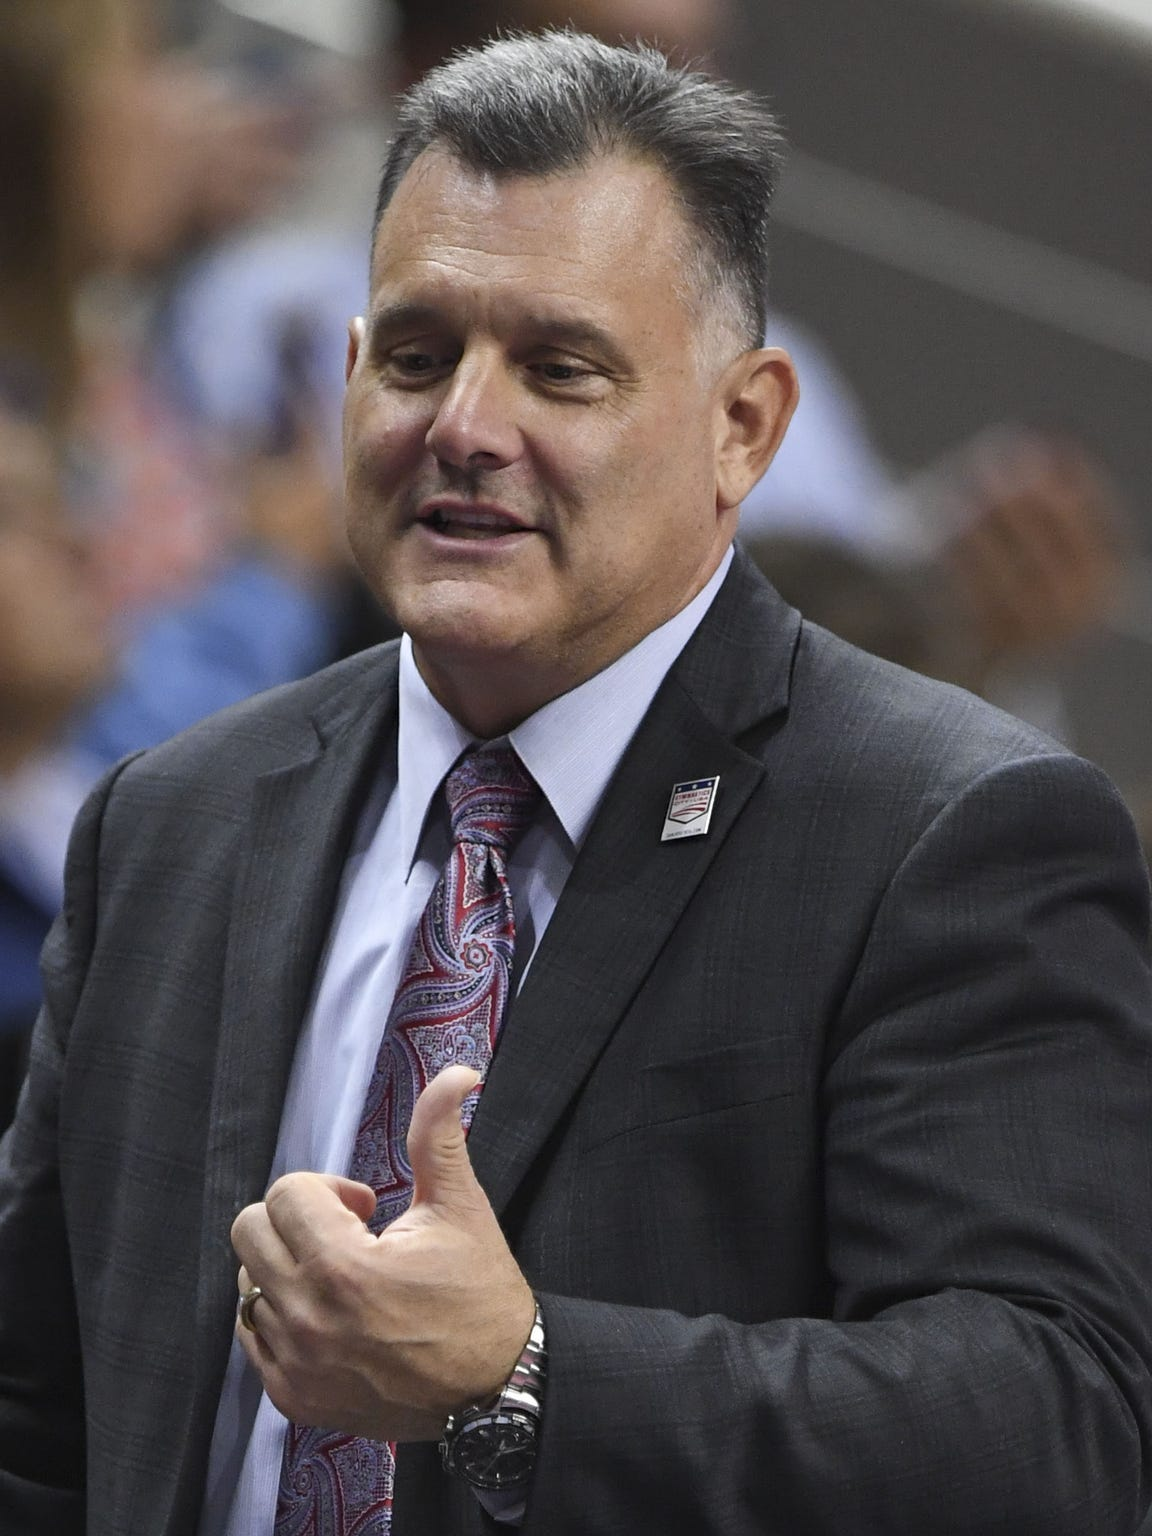 USA Gymnastics President Steve Penny during the women's gymnastics team trials in July 2016 in San Jose, California.